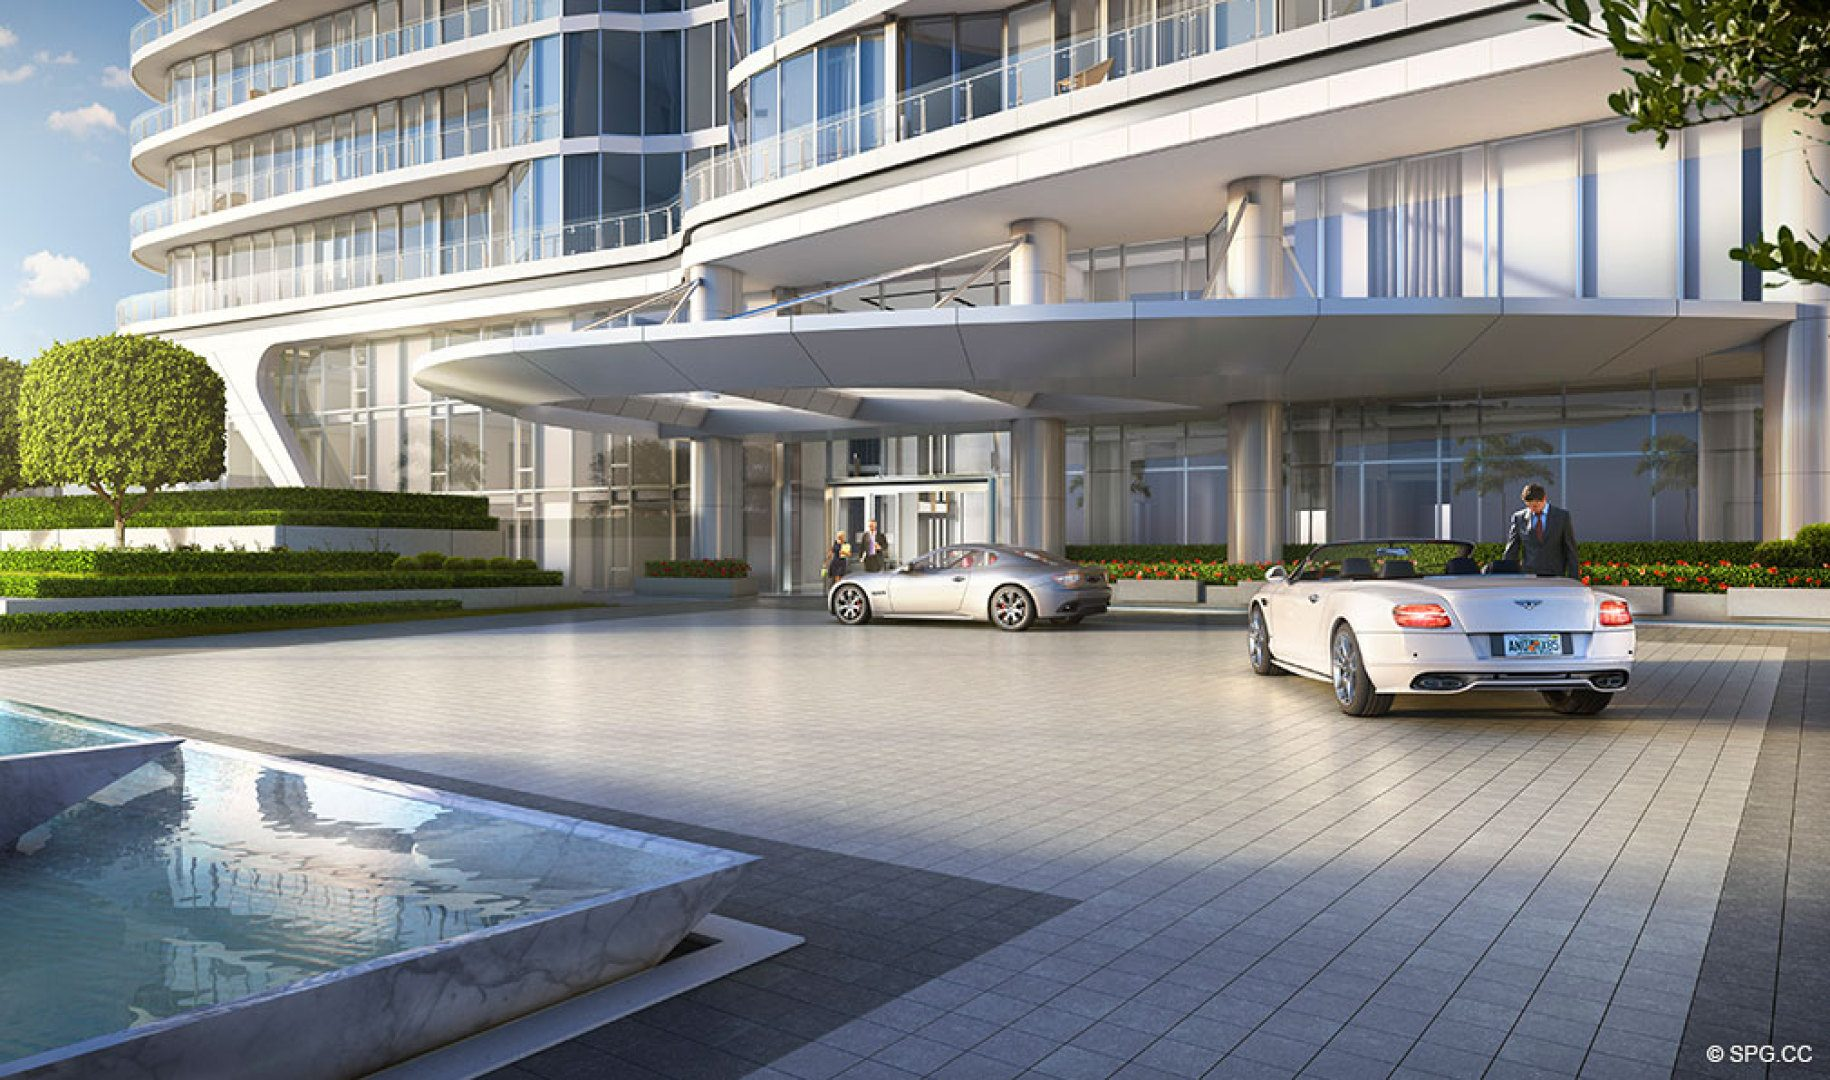 Port Cochere at The Bristol, Luxury Waterfront Condos in West Palm Beach, Florida 33401